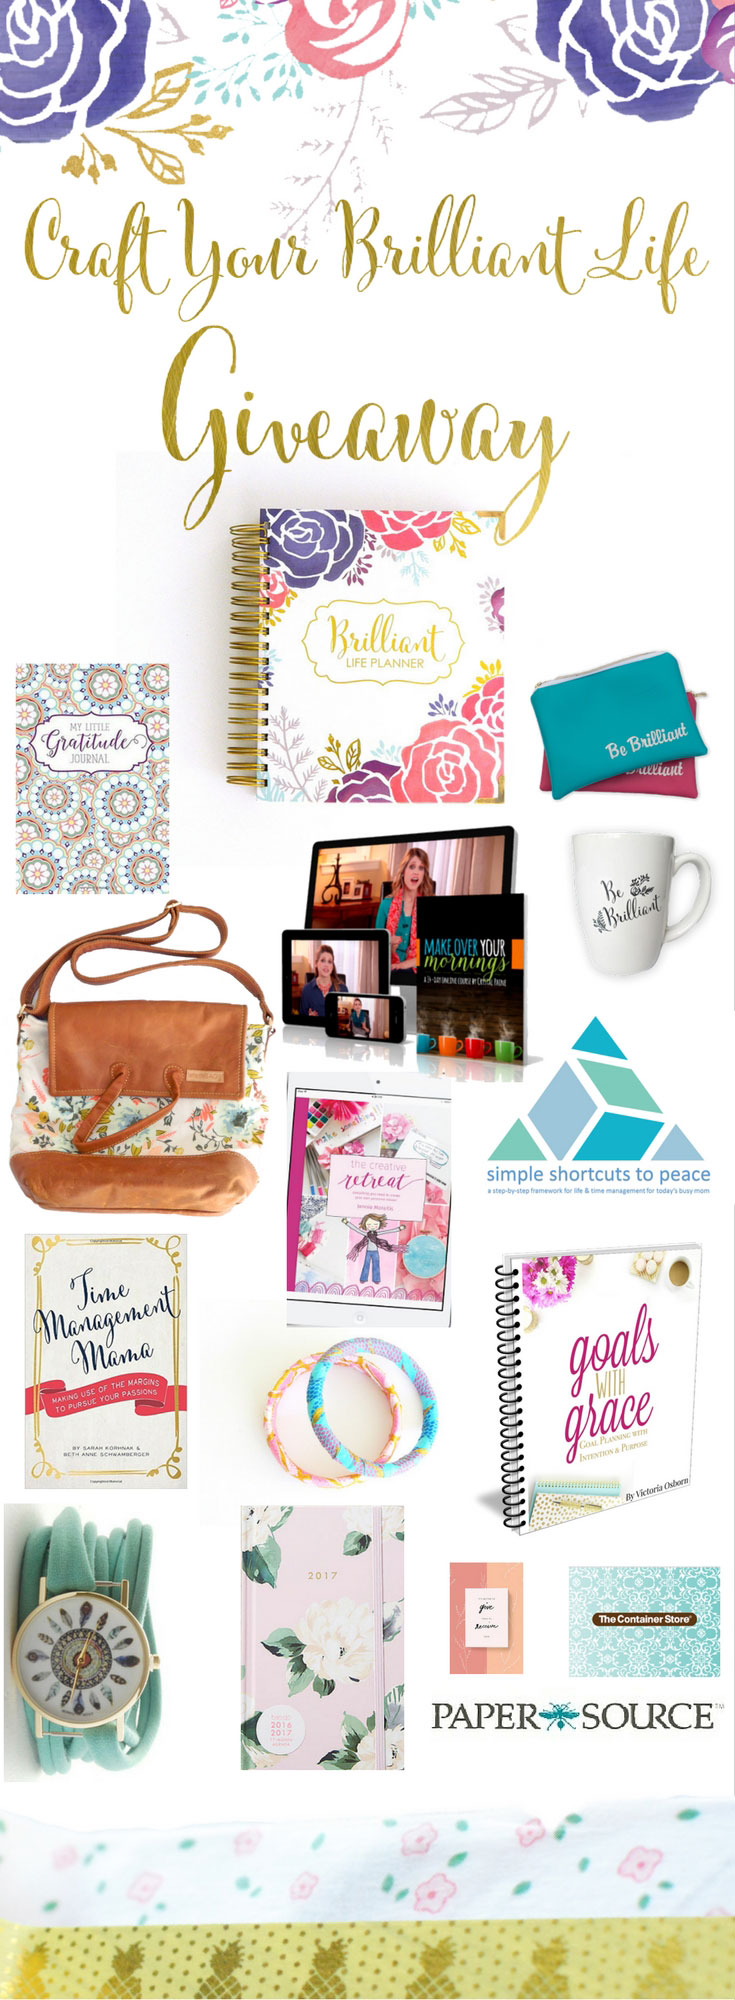 HUGE planner + intentional living giveaway! Craft Your Brilliant Life Giveaway